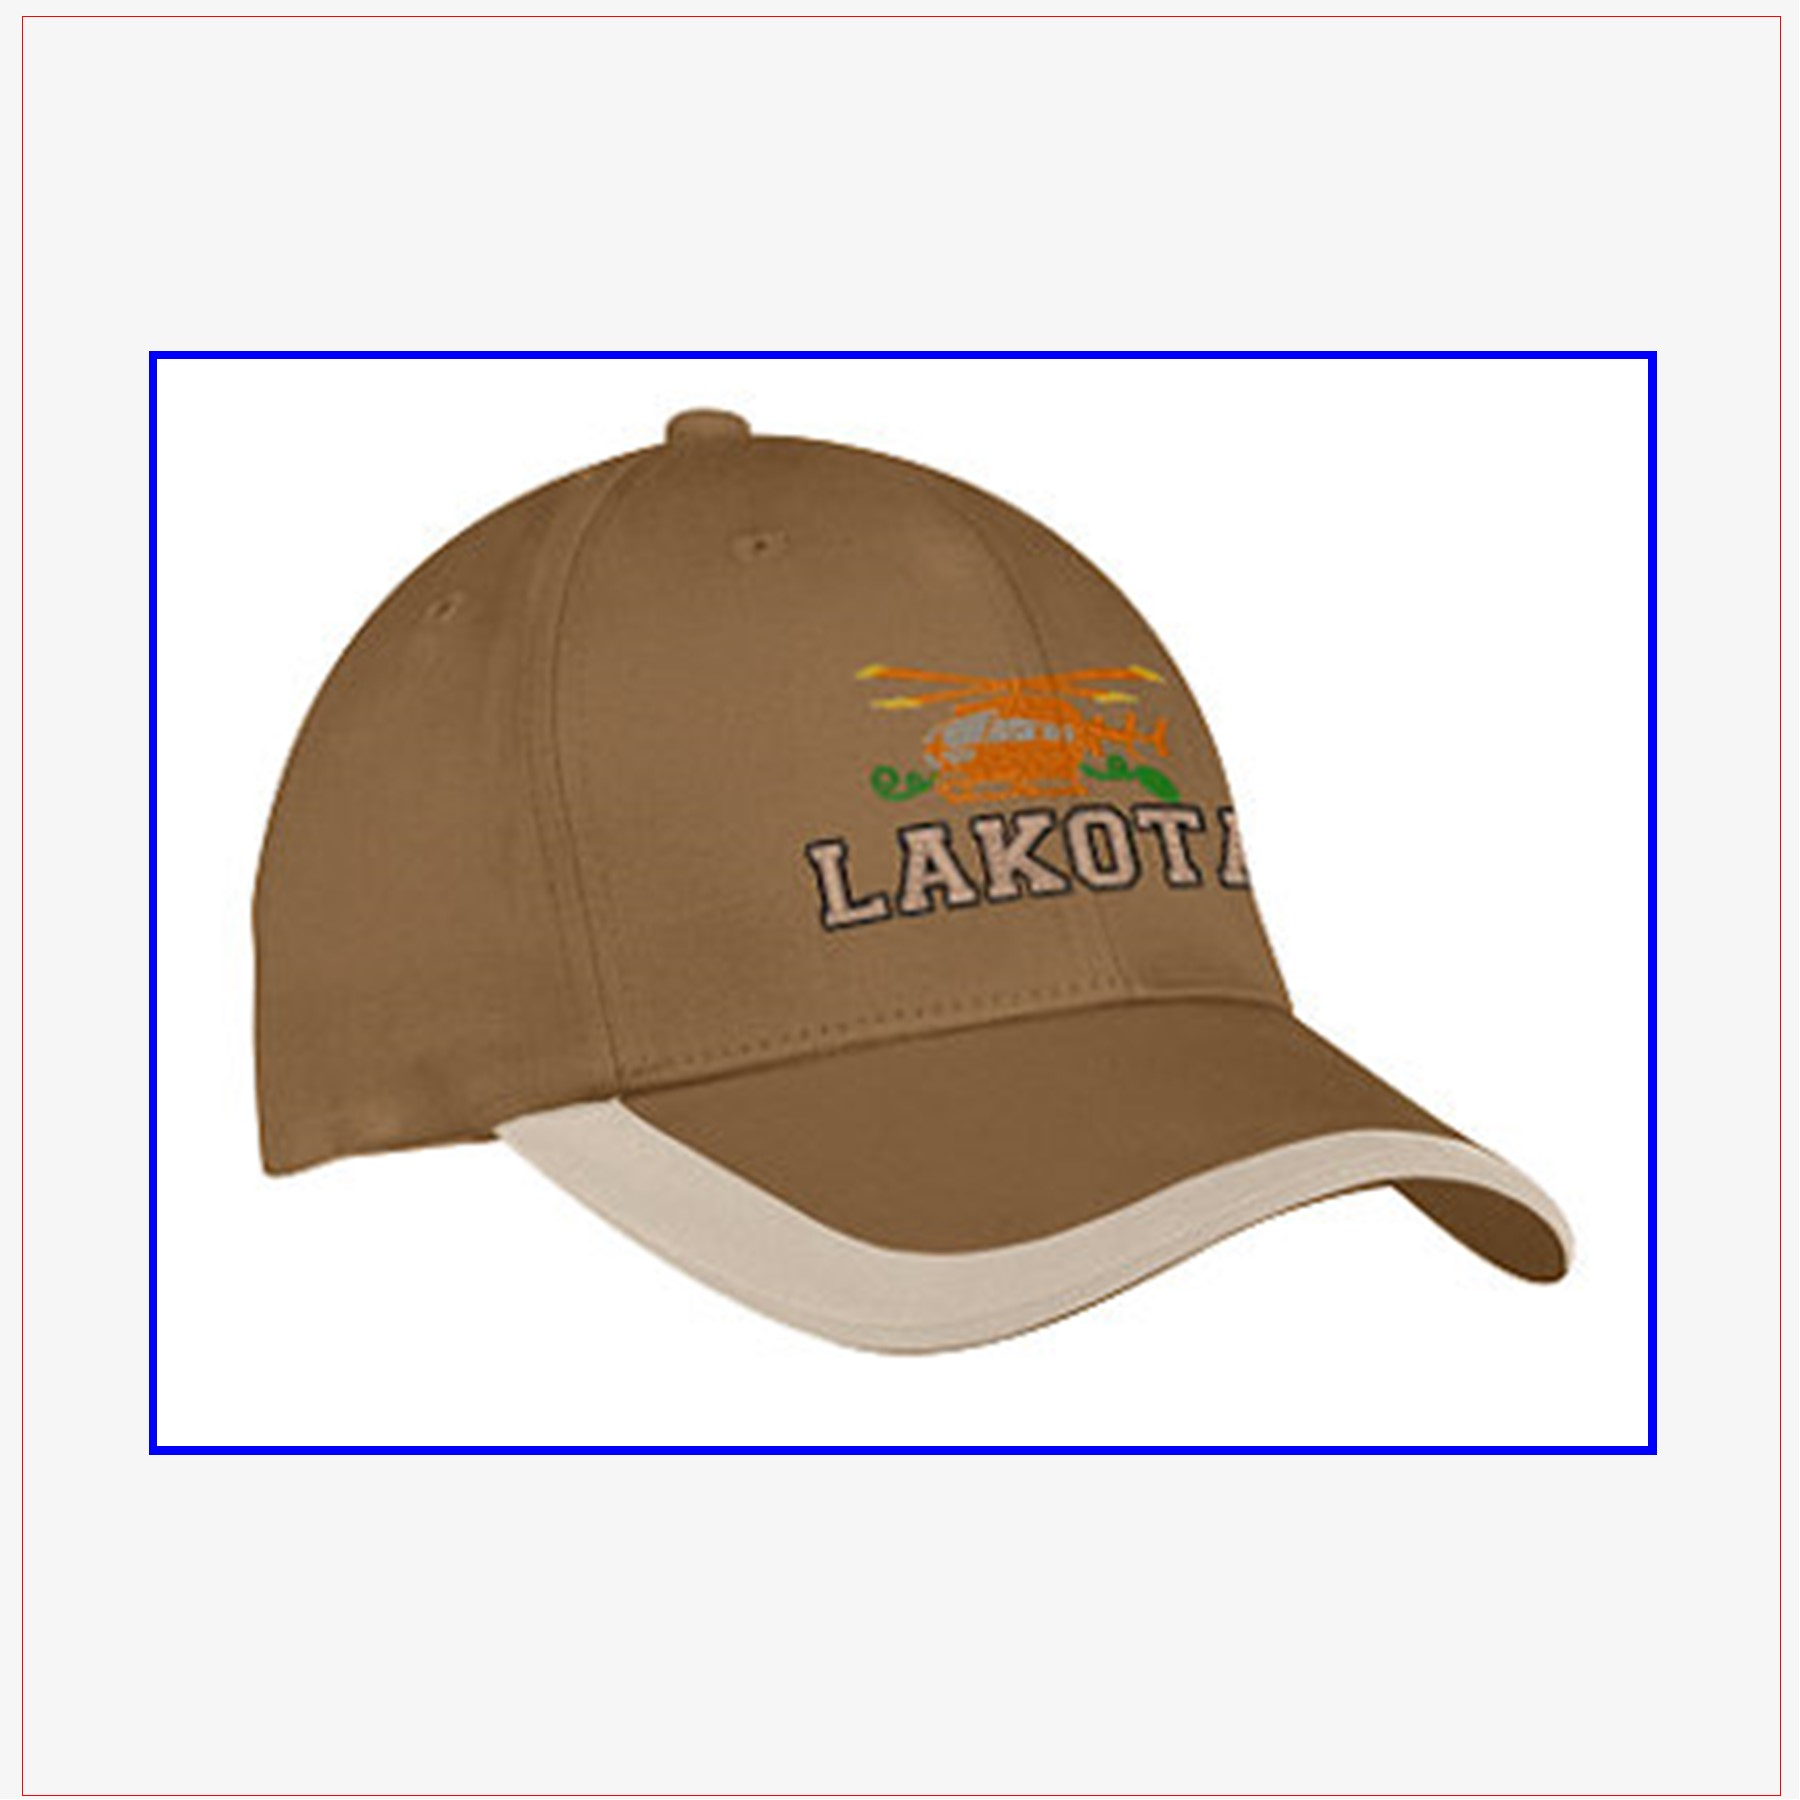 bd0cfd39 Contrast Stripe Sandwich Bill Cap - Choice of Design